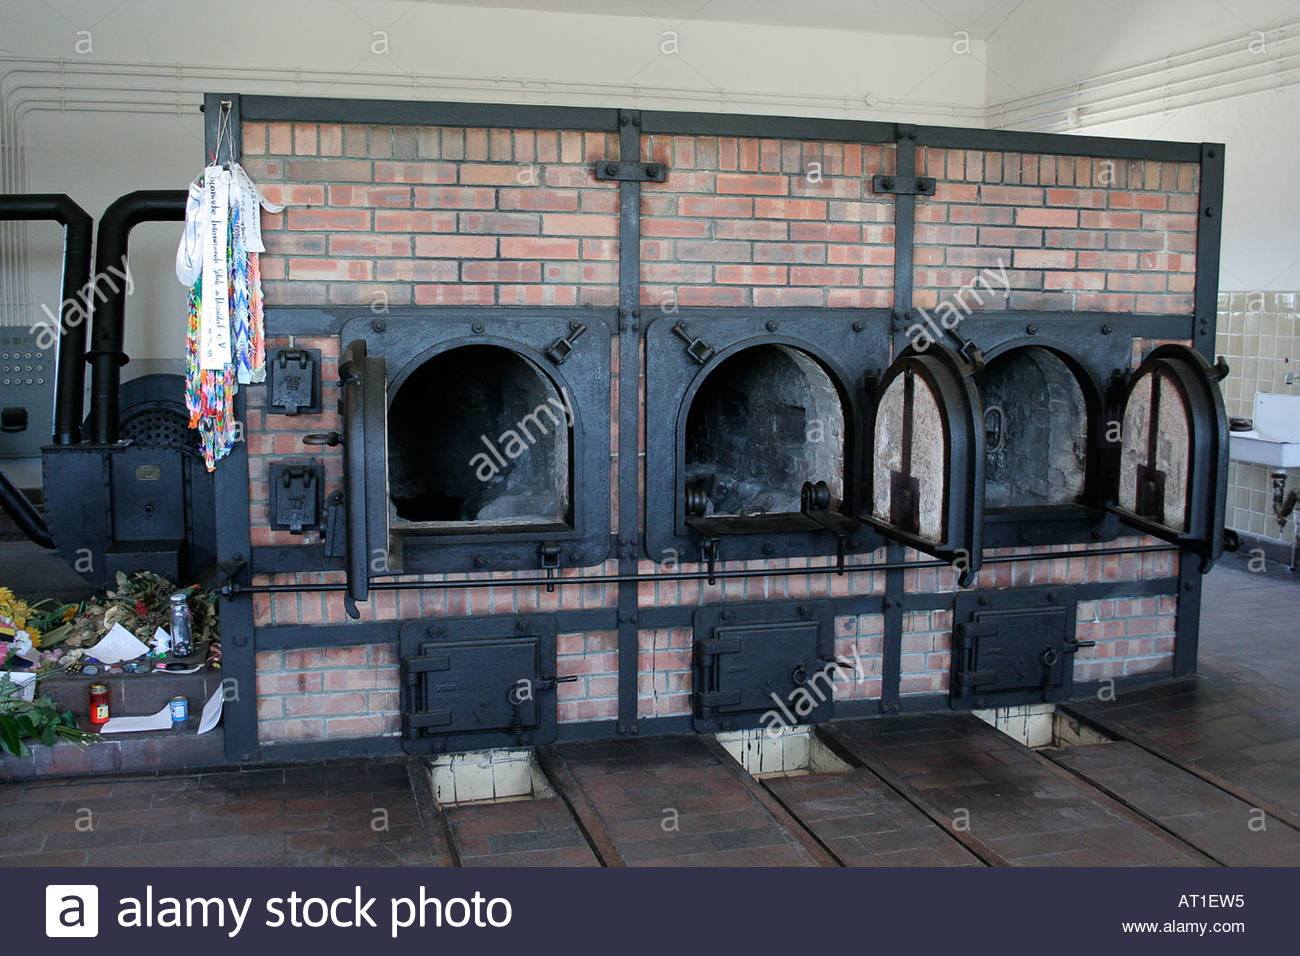 buchenwald camp photos buchenwald camp images alamy. Black Bedroom Furniture Sets. Home Design Ideas